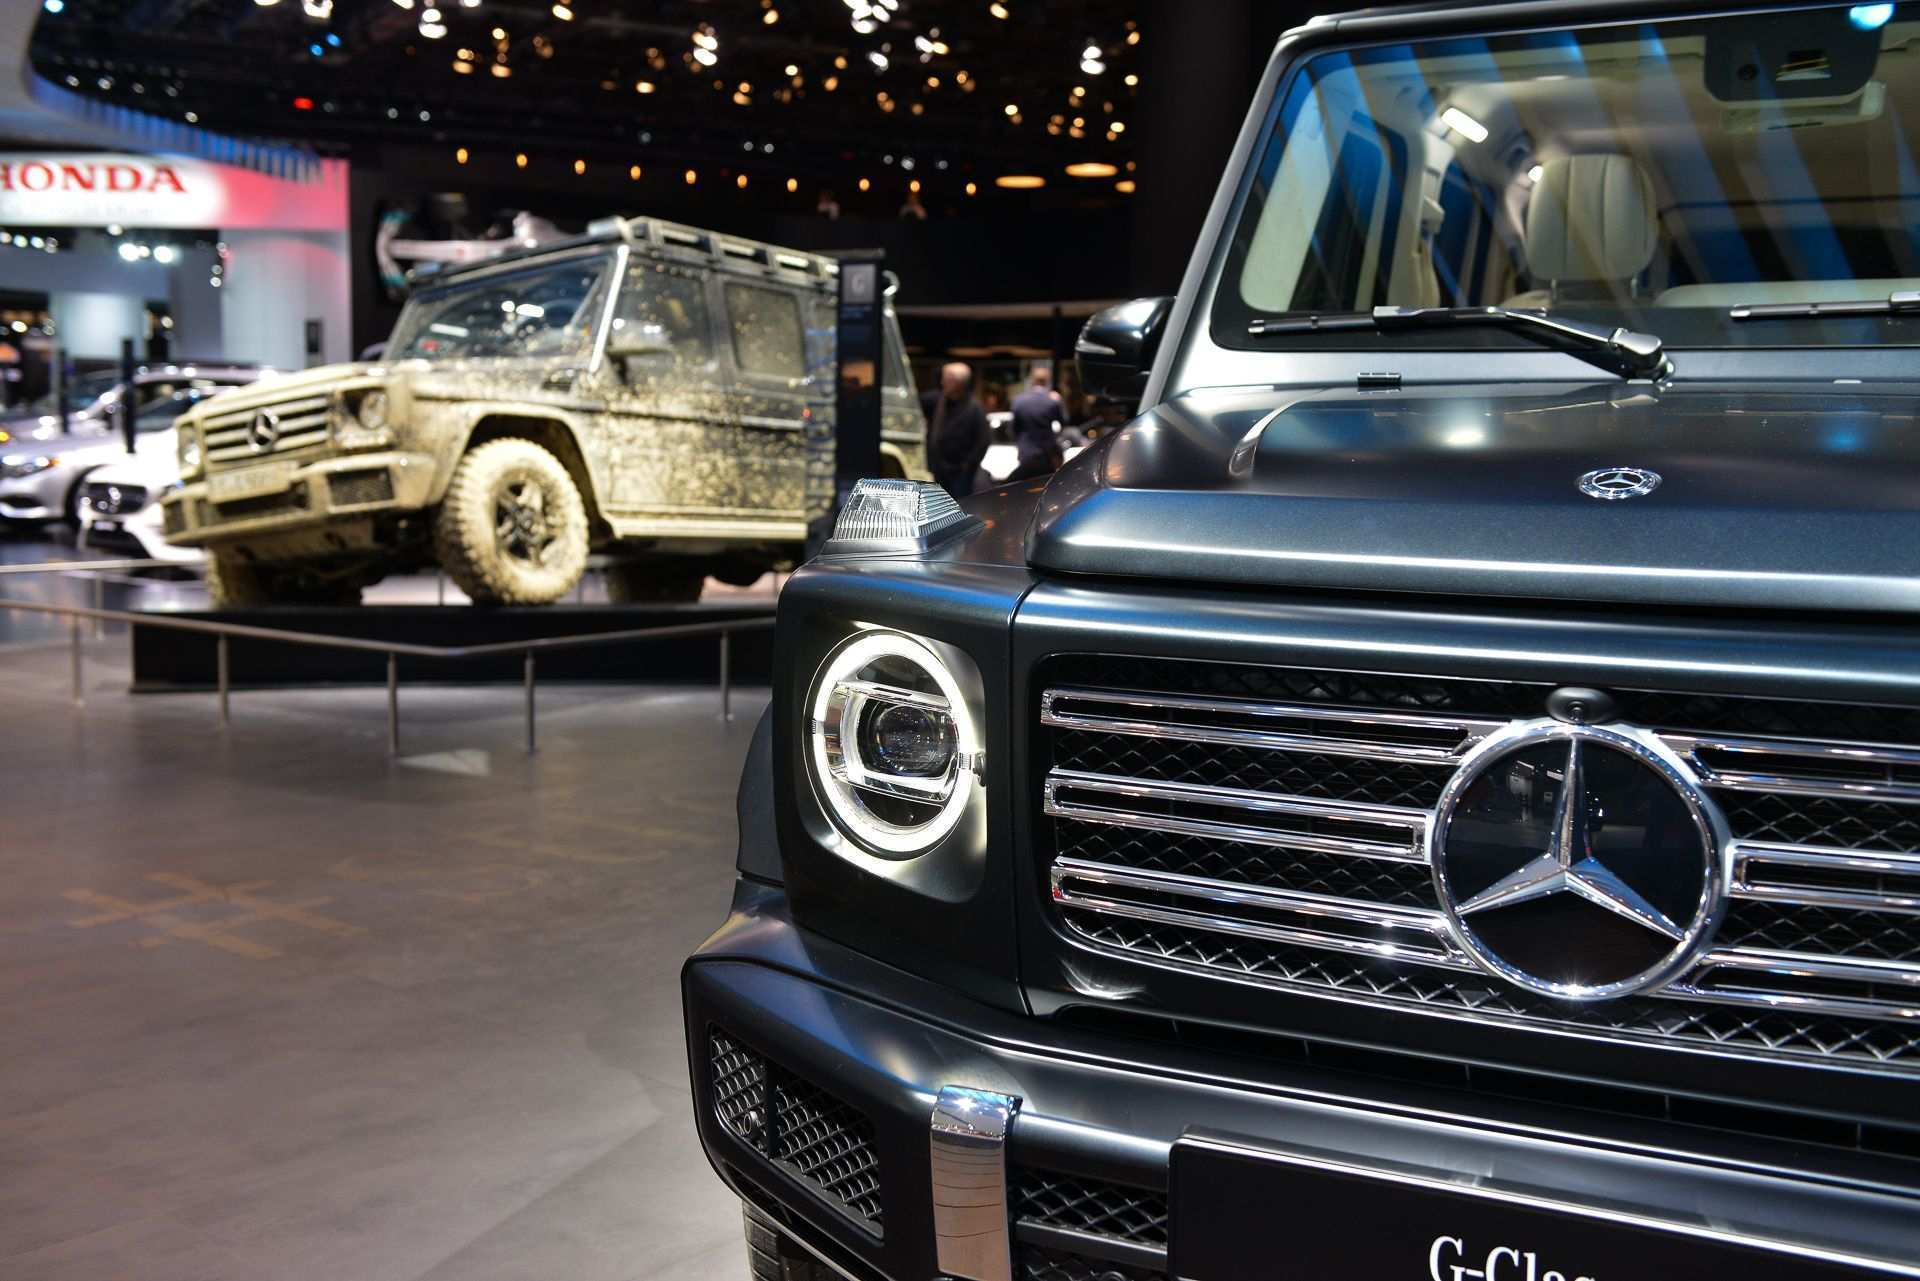 18 All New Mercedes G 2020 New Concept New Concept by Mercedes G 2020 New Concept